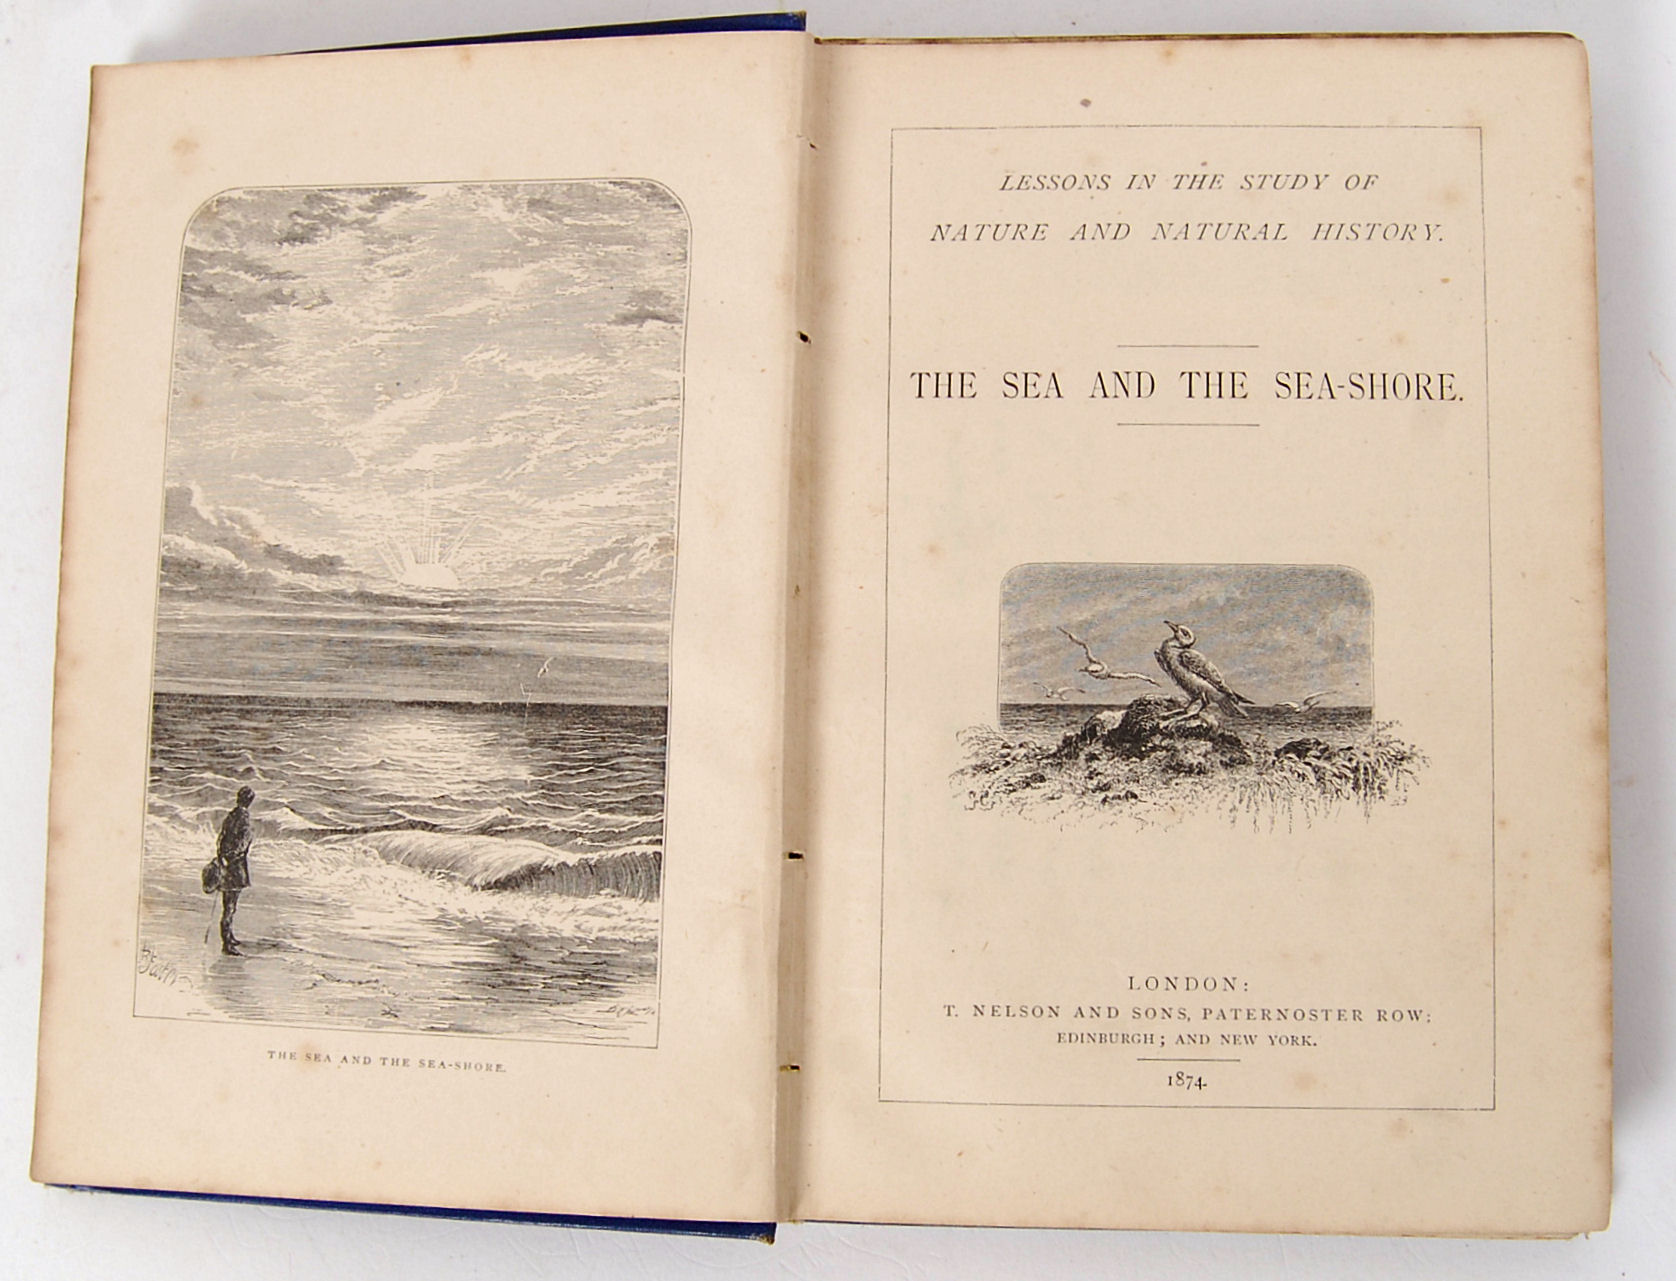 Lot 193 - THE SEA AND THE SEASHORE